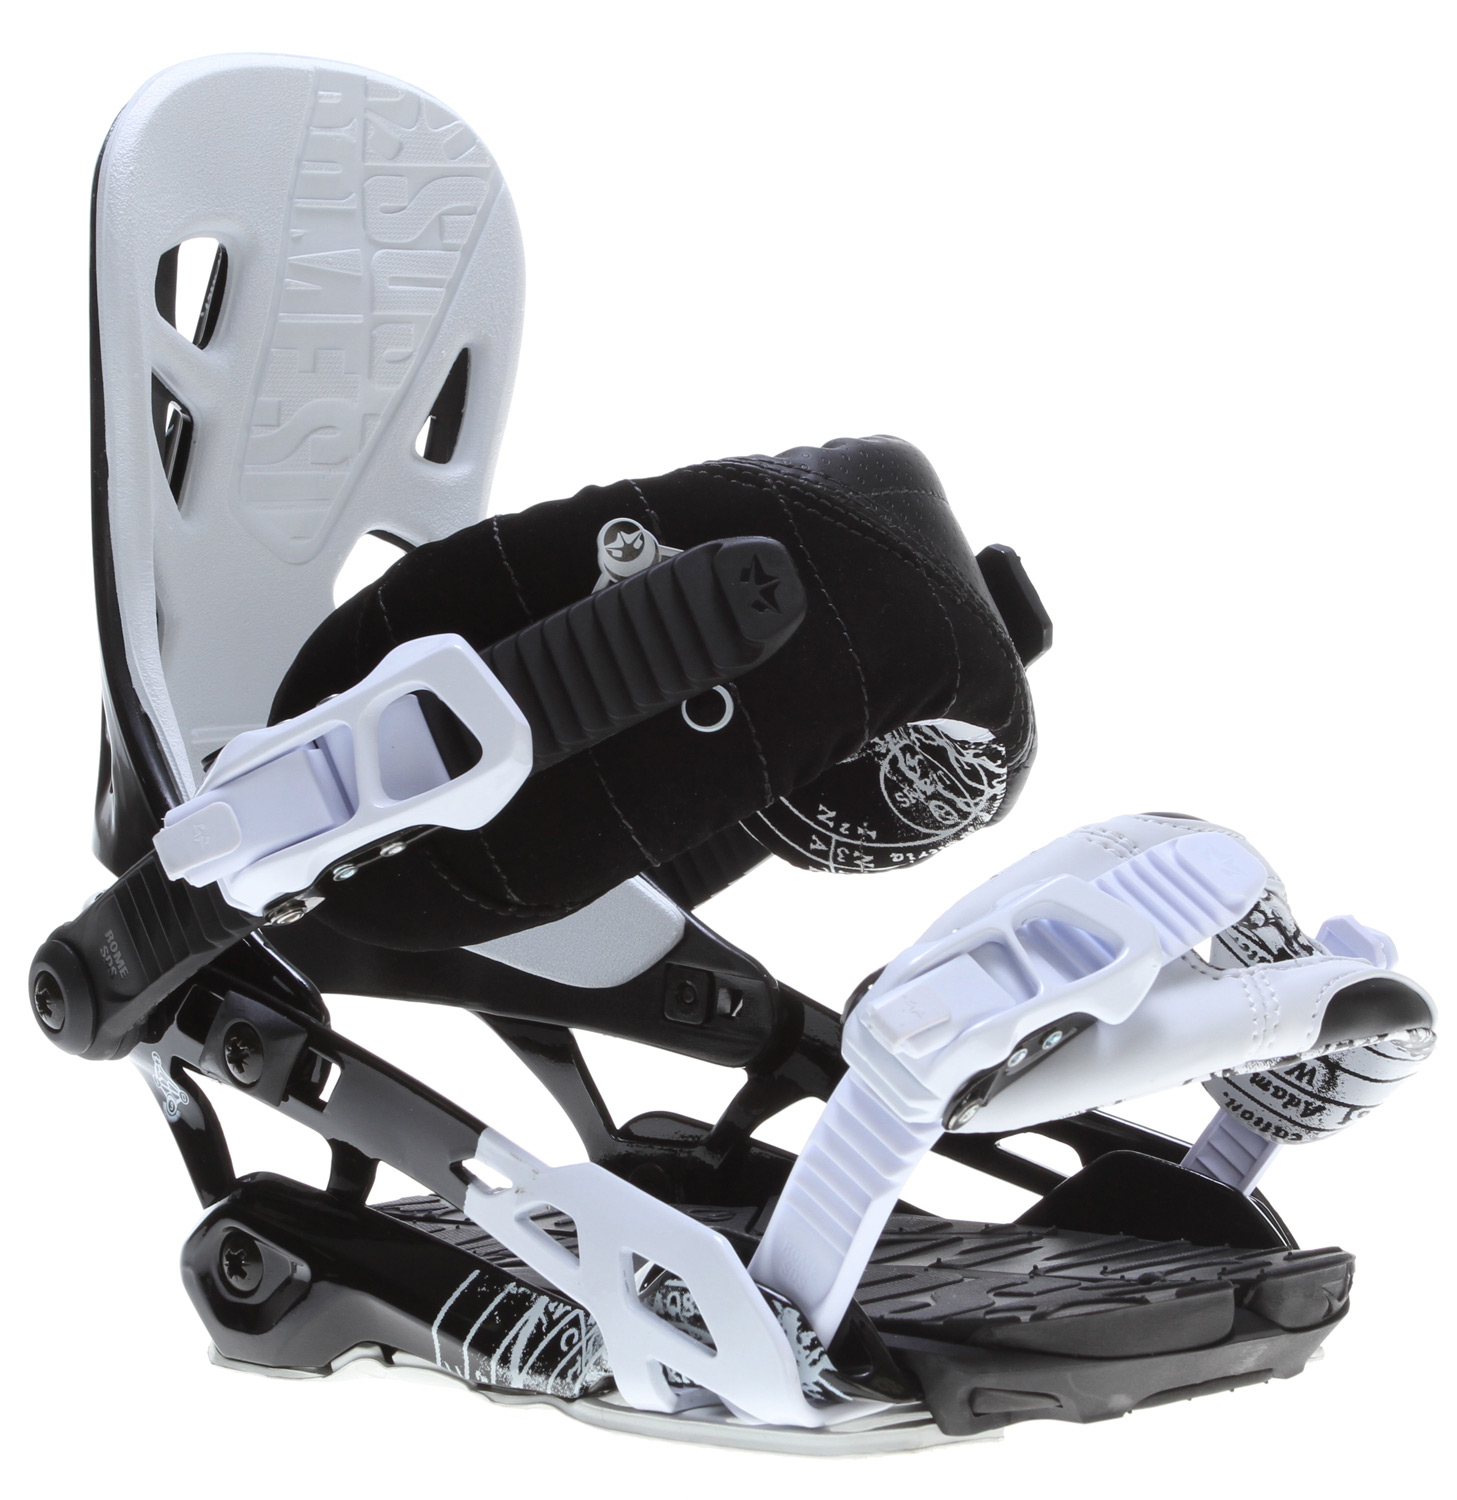 Snowboard Since day 1 of our binding division, the 390 delivers every timeKey Features of the Rome 390 Snowboard Bindings: Flexible for freedom and flow Solid support for heel-to-toe power Deep slashes with heavy leverage and perfect rail balance Narrow baseplate footprint that limits binding interference for natural board feel Contour ankle strap: plush feel for maximum comfort on long days with a dog-bone shape for flexible tweakage Openform toe strap: grabs the bottom and top of the boot for maximum hold with minimal pressure, open coverage and light weight Autostrap: keep your straps out of your foot bed in an easily accessible position that bounces contour ankle strap V-rod baseplate Underwrap.2 heel hoop 390 asym highback Subbase v-pad Rome customization foundation Rome quicktech foundationback to strap down quickly and efficiently. - $160.95